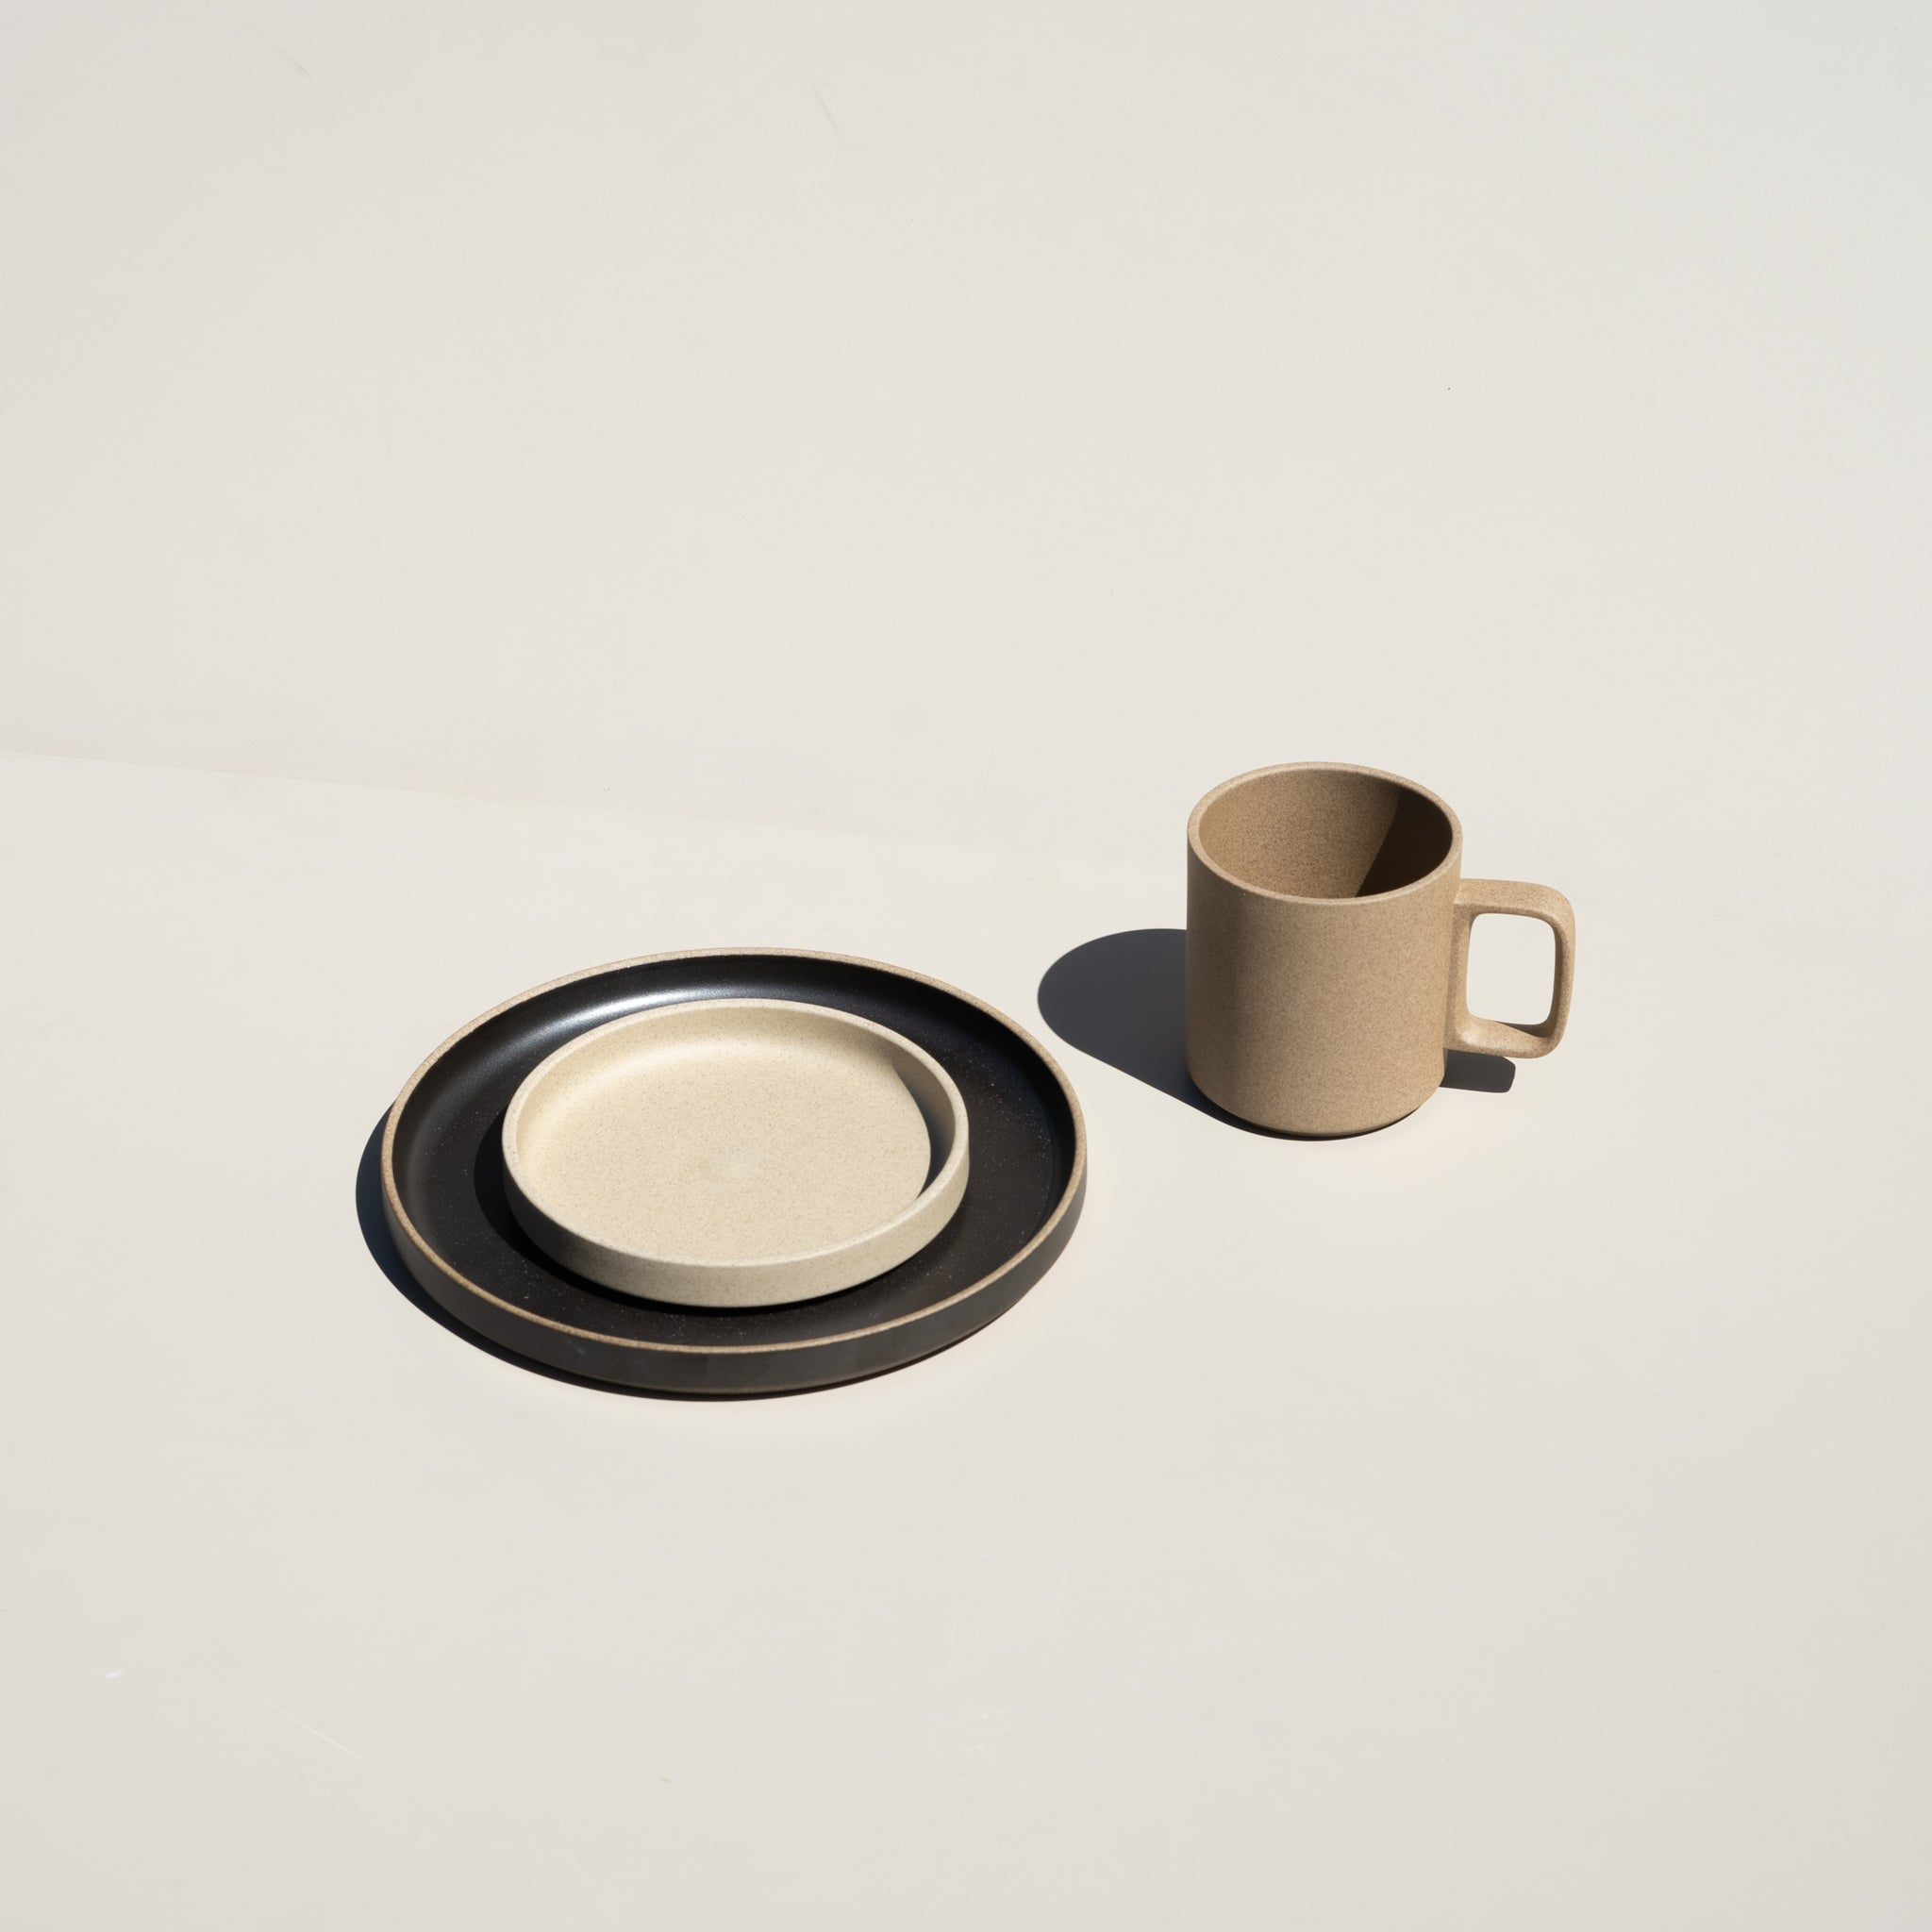 "Hasami Porcelain ceramic wares made in Japan, featuring the 5.5/8"" plate in natural finish."